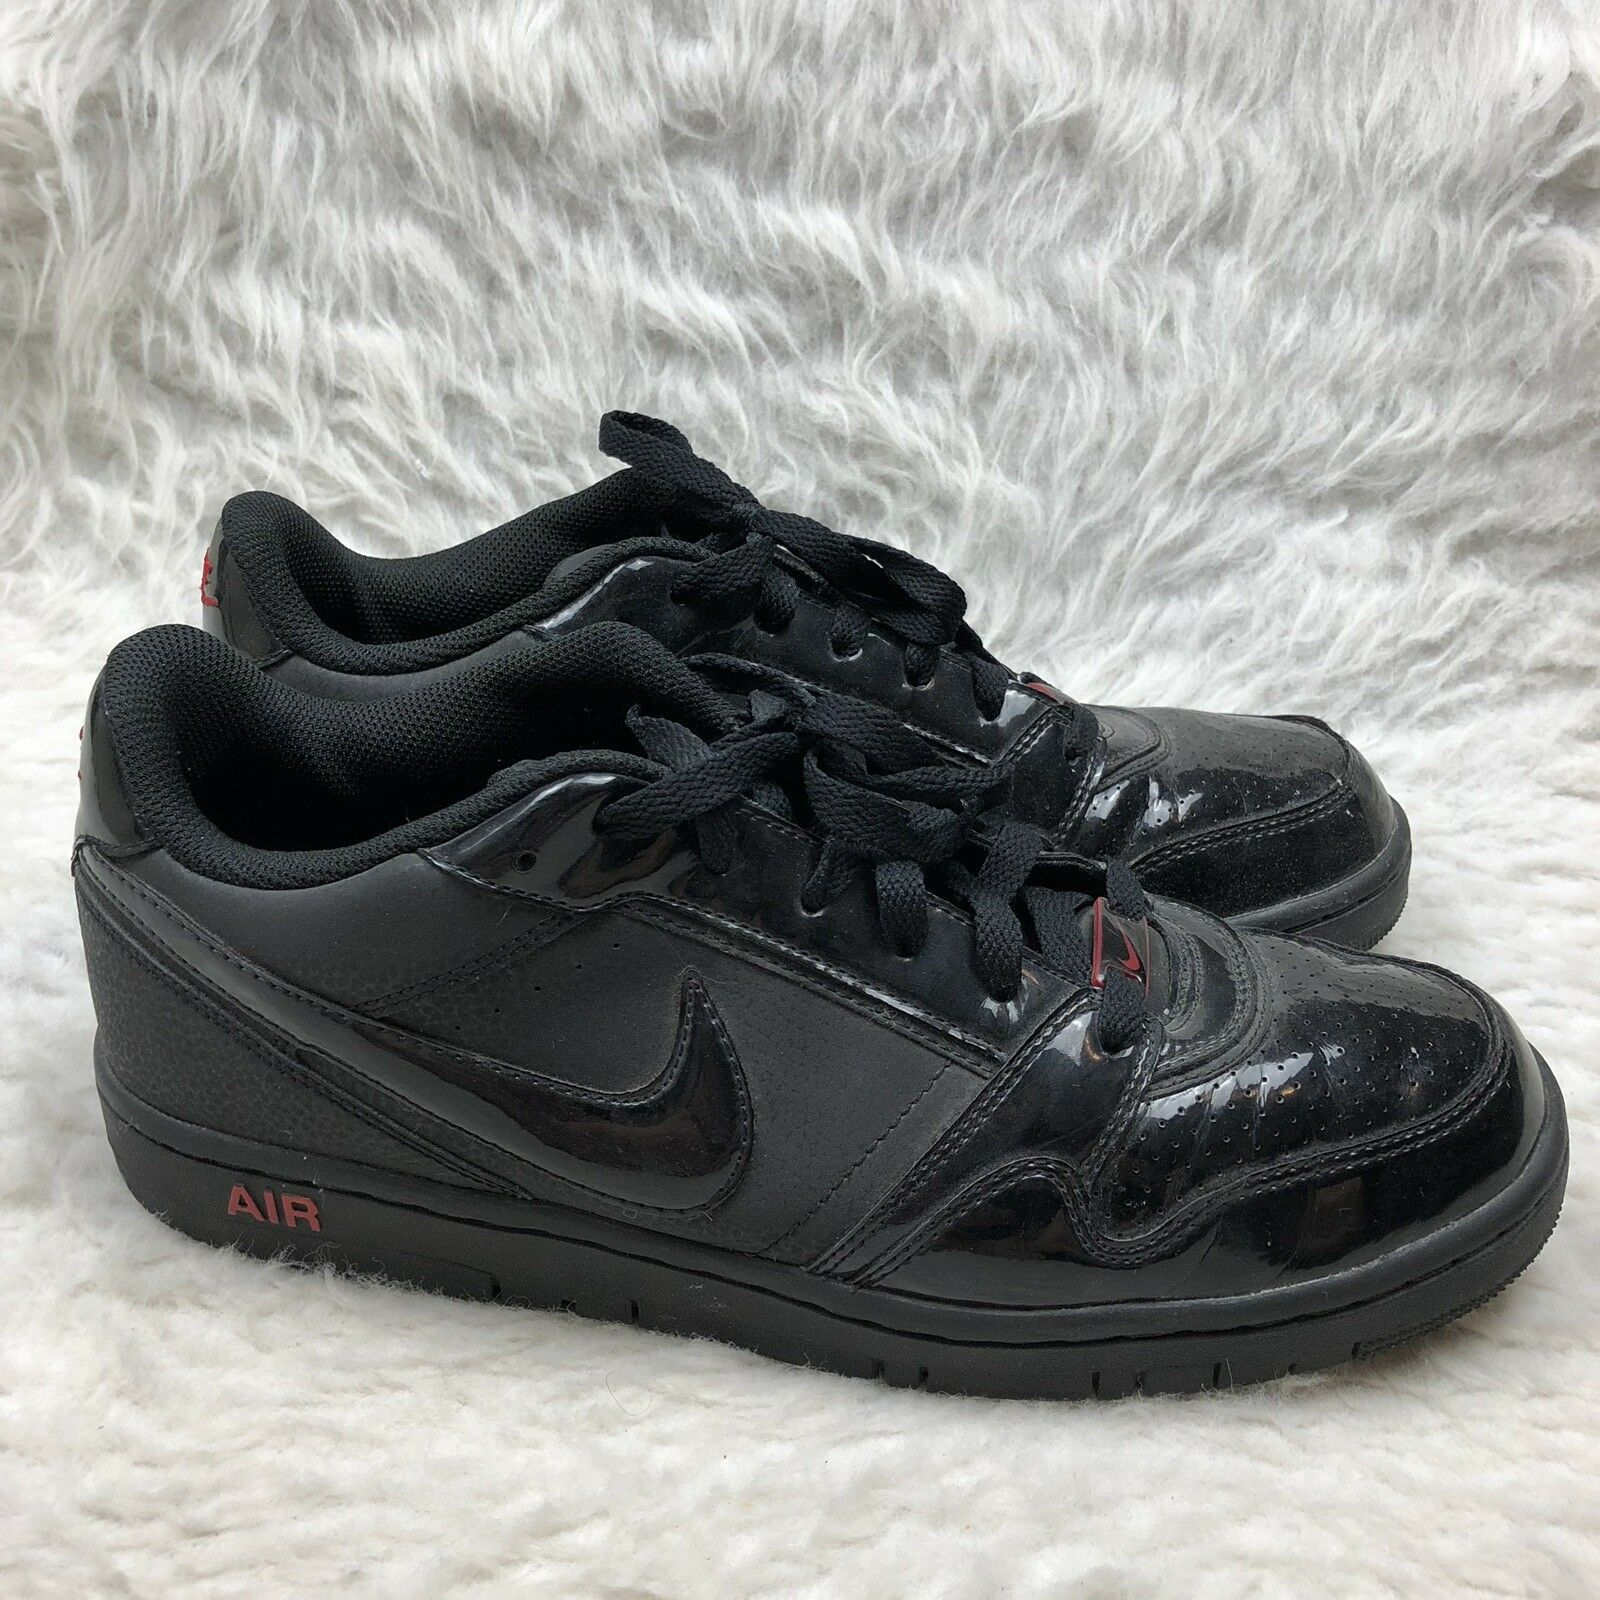 eb3107974d Mens Nike Air Prestige III Size 10.5 Black Red Athletic shoes  nrupqc3663-Athletic Shoes